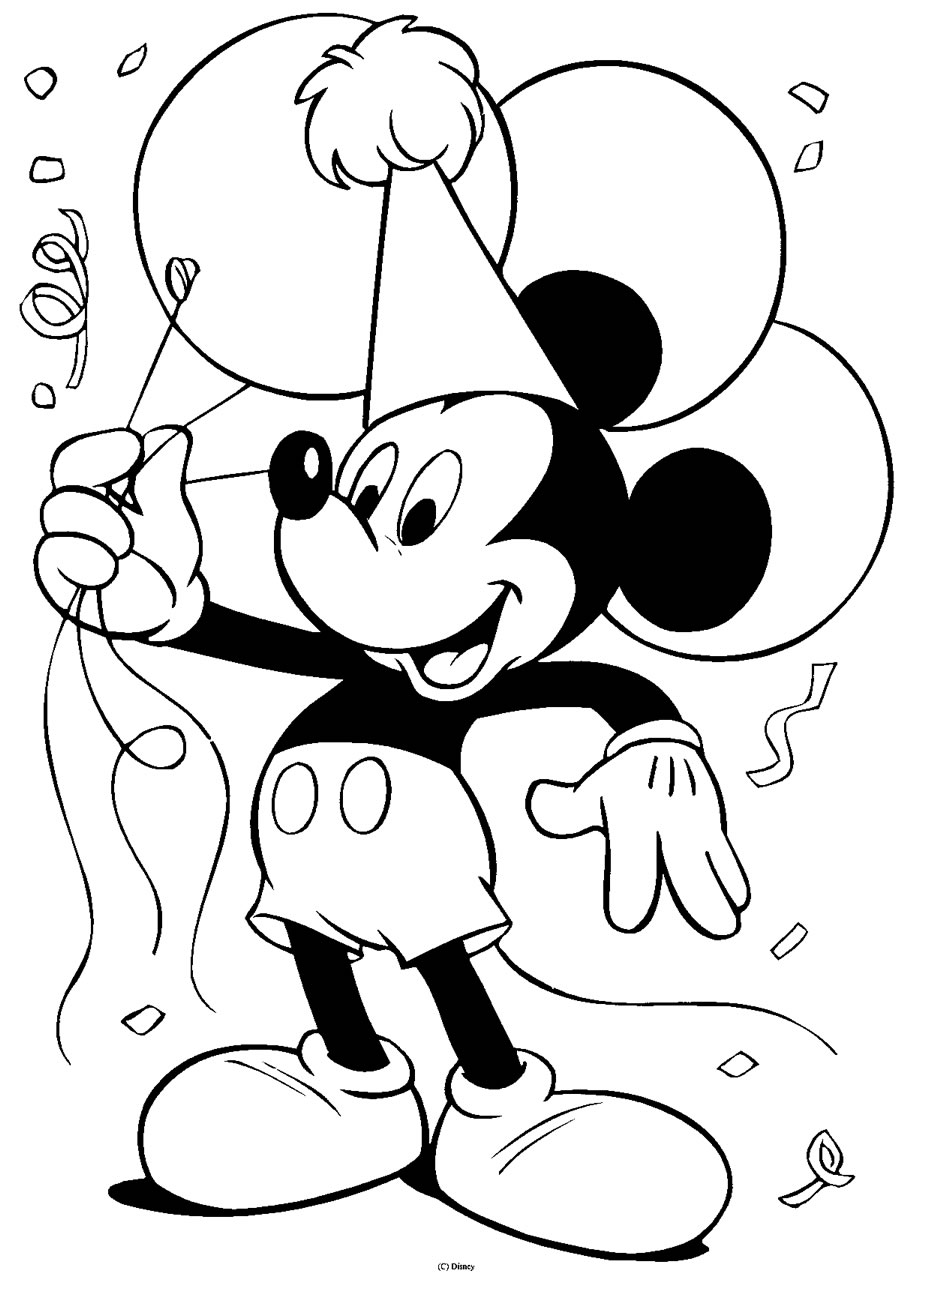 1331x1627 mickey mouse coloring pages free coloring pages 2 944x1295 color drawing to print famous characters